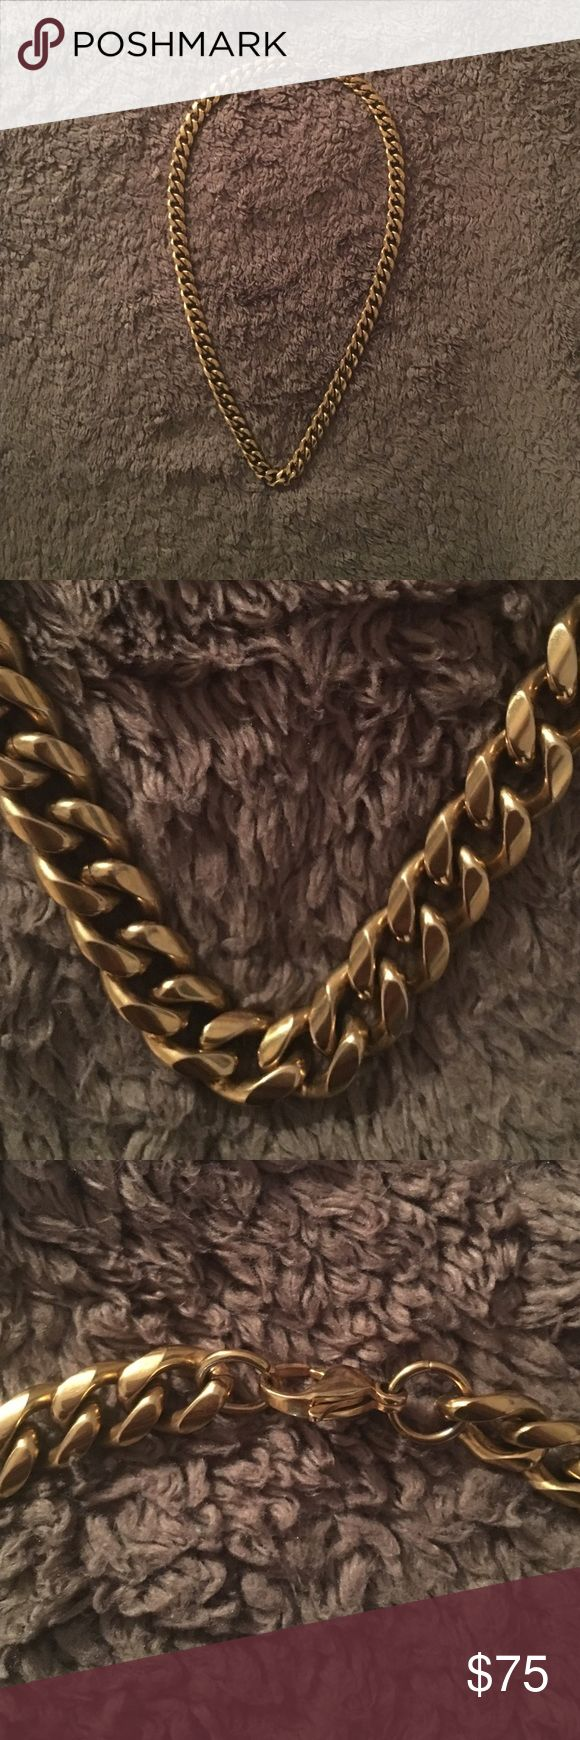 "Gold Plated Chain 18"" Gold Plated neck chain. 1/2"" thick. Gold Gods Accessories Jewelry"